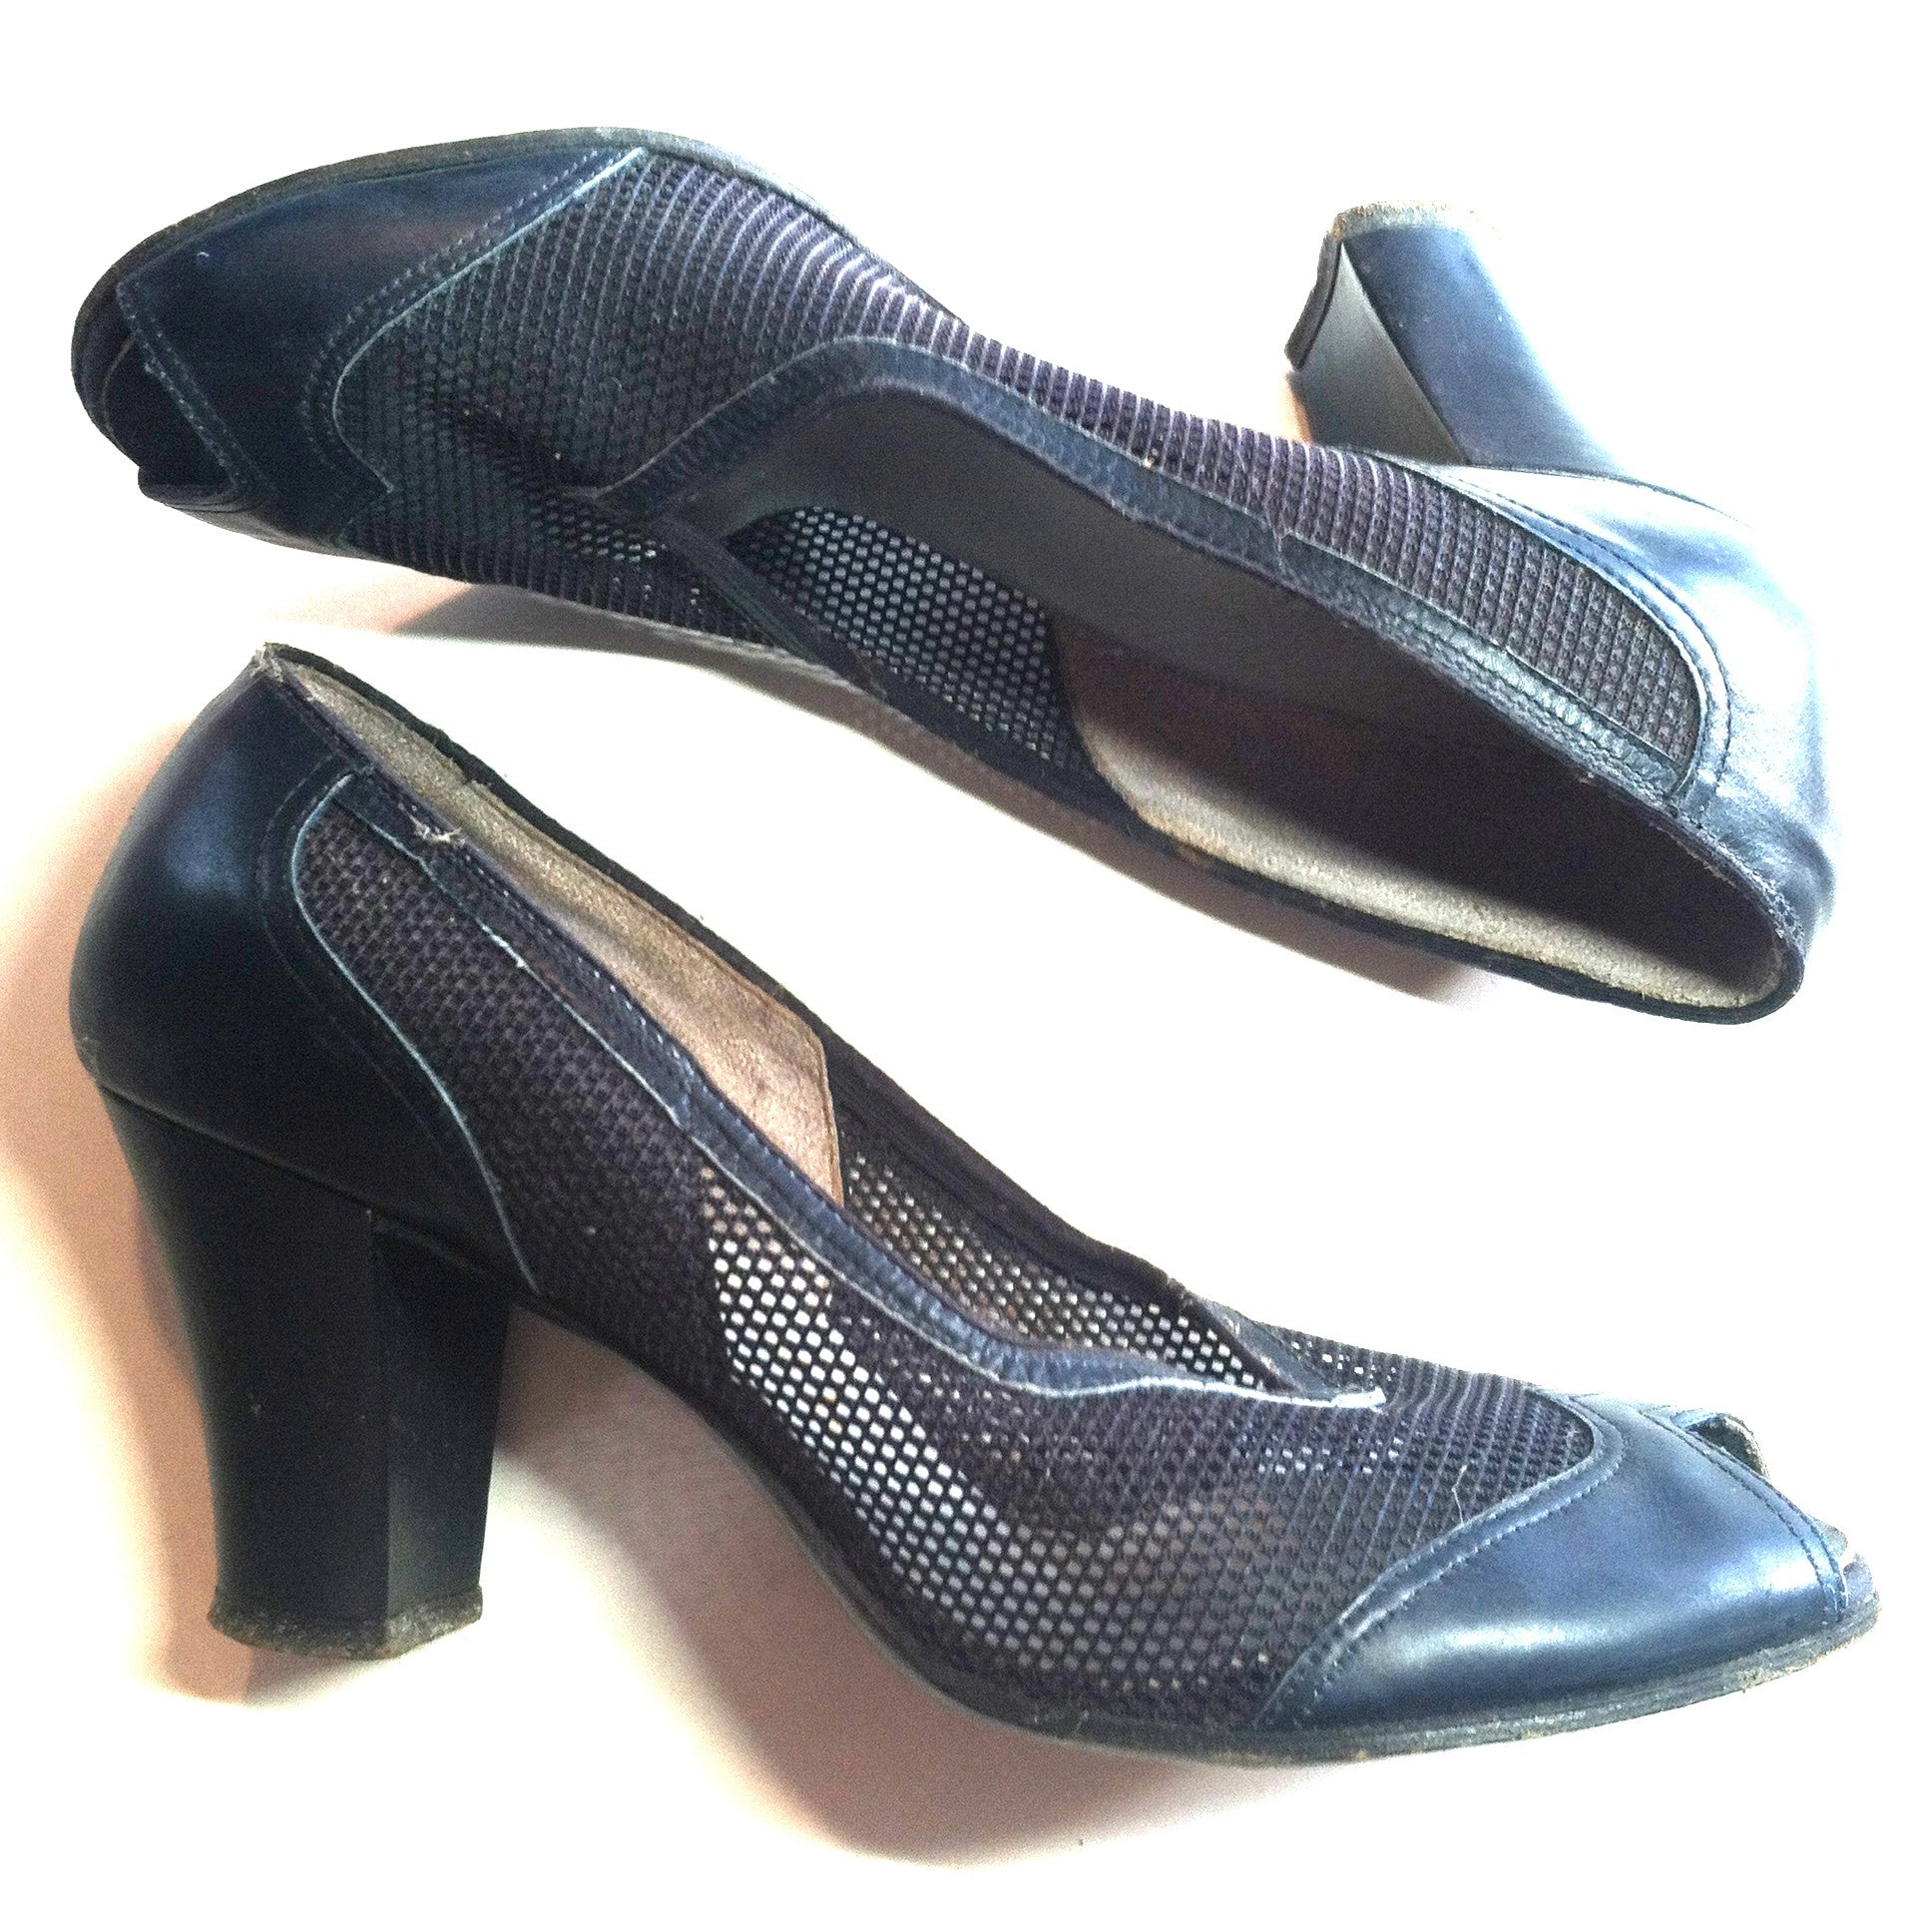 Dark Blue Open Toe Mesh Spectator Inspired High Heel Shoes 6 circa 1940s Dorothea's Closet Vintage Shoes